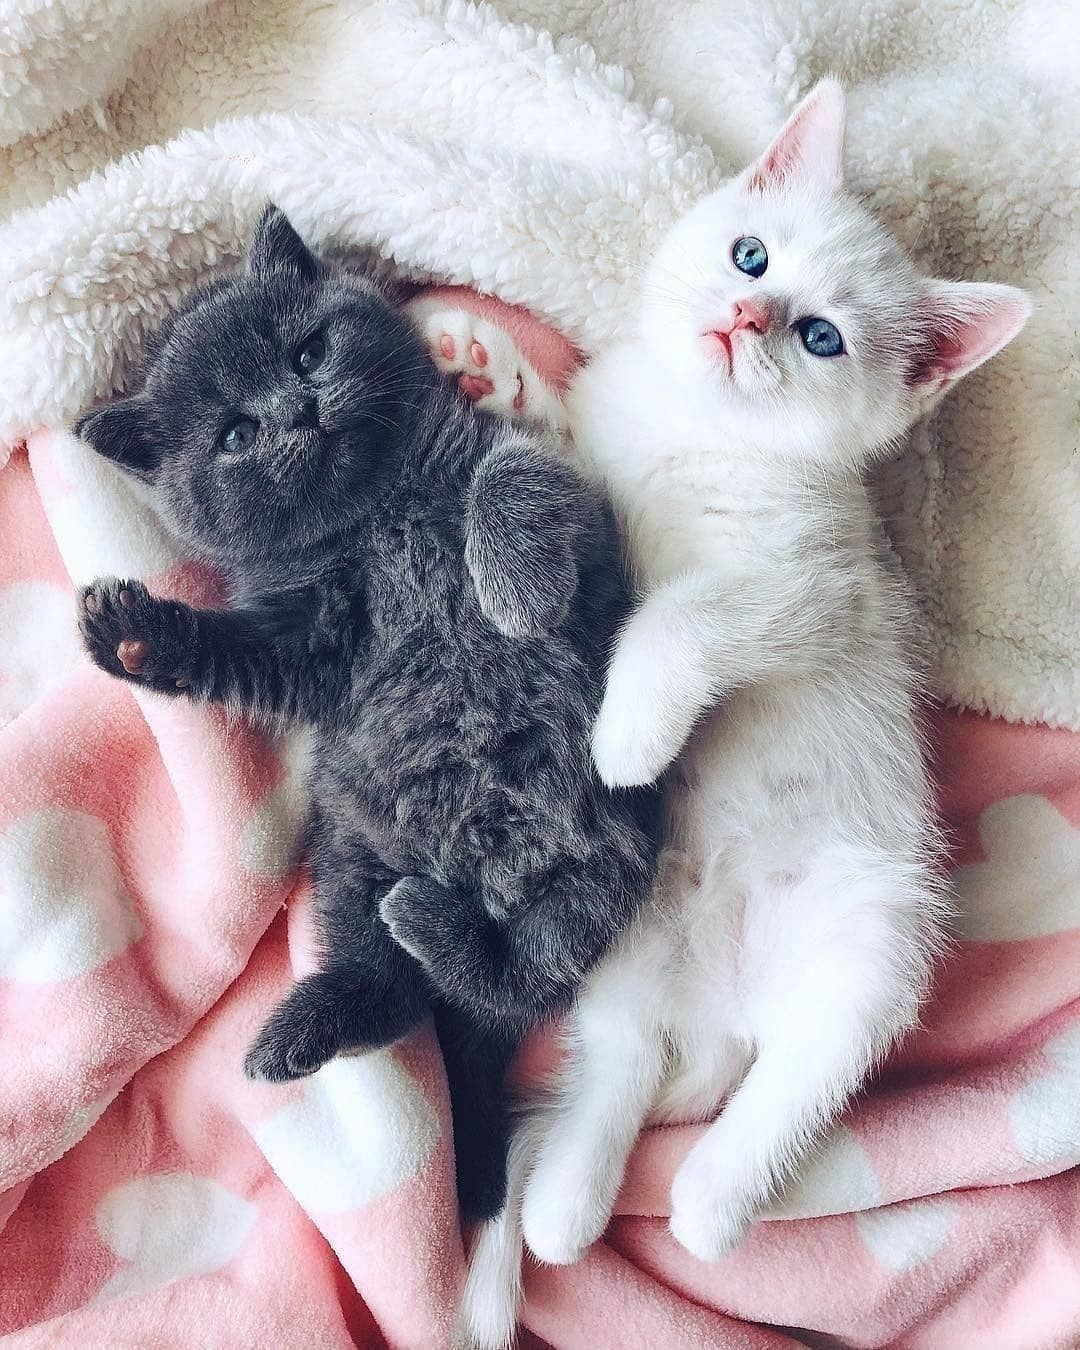 Cat Kitty Cats Cats Make Cat Home Cat Funny Love Cat Quote Cats Cats Cute Cats Pets Kittens Kittens In 2020 Kittens Cutest Cute Cats Beautiful Cats